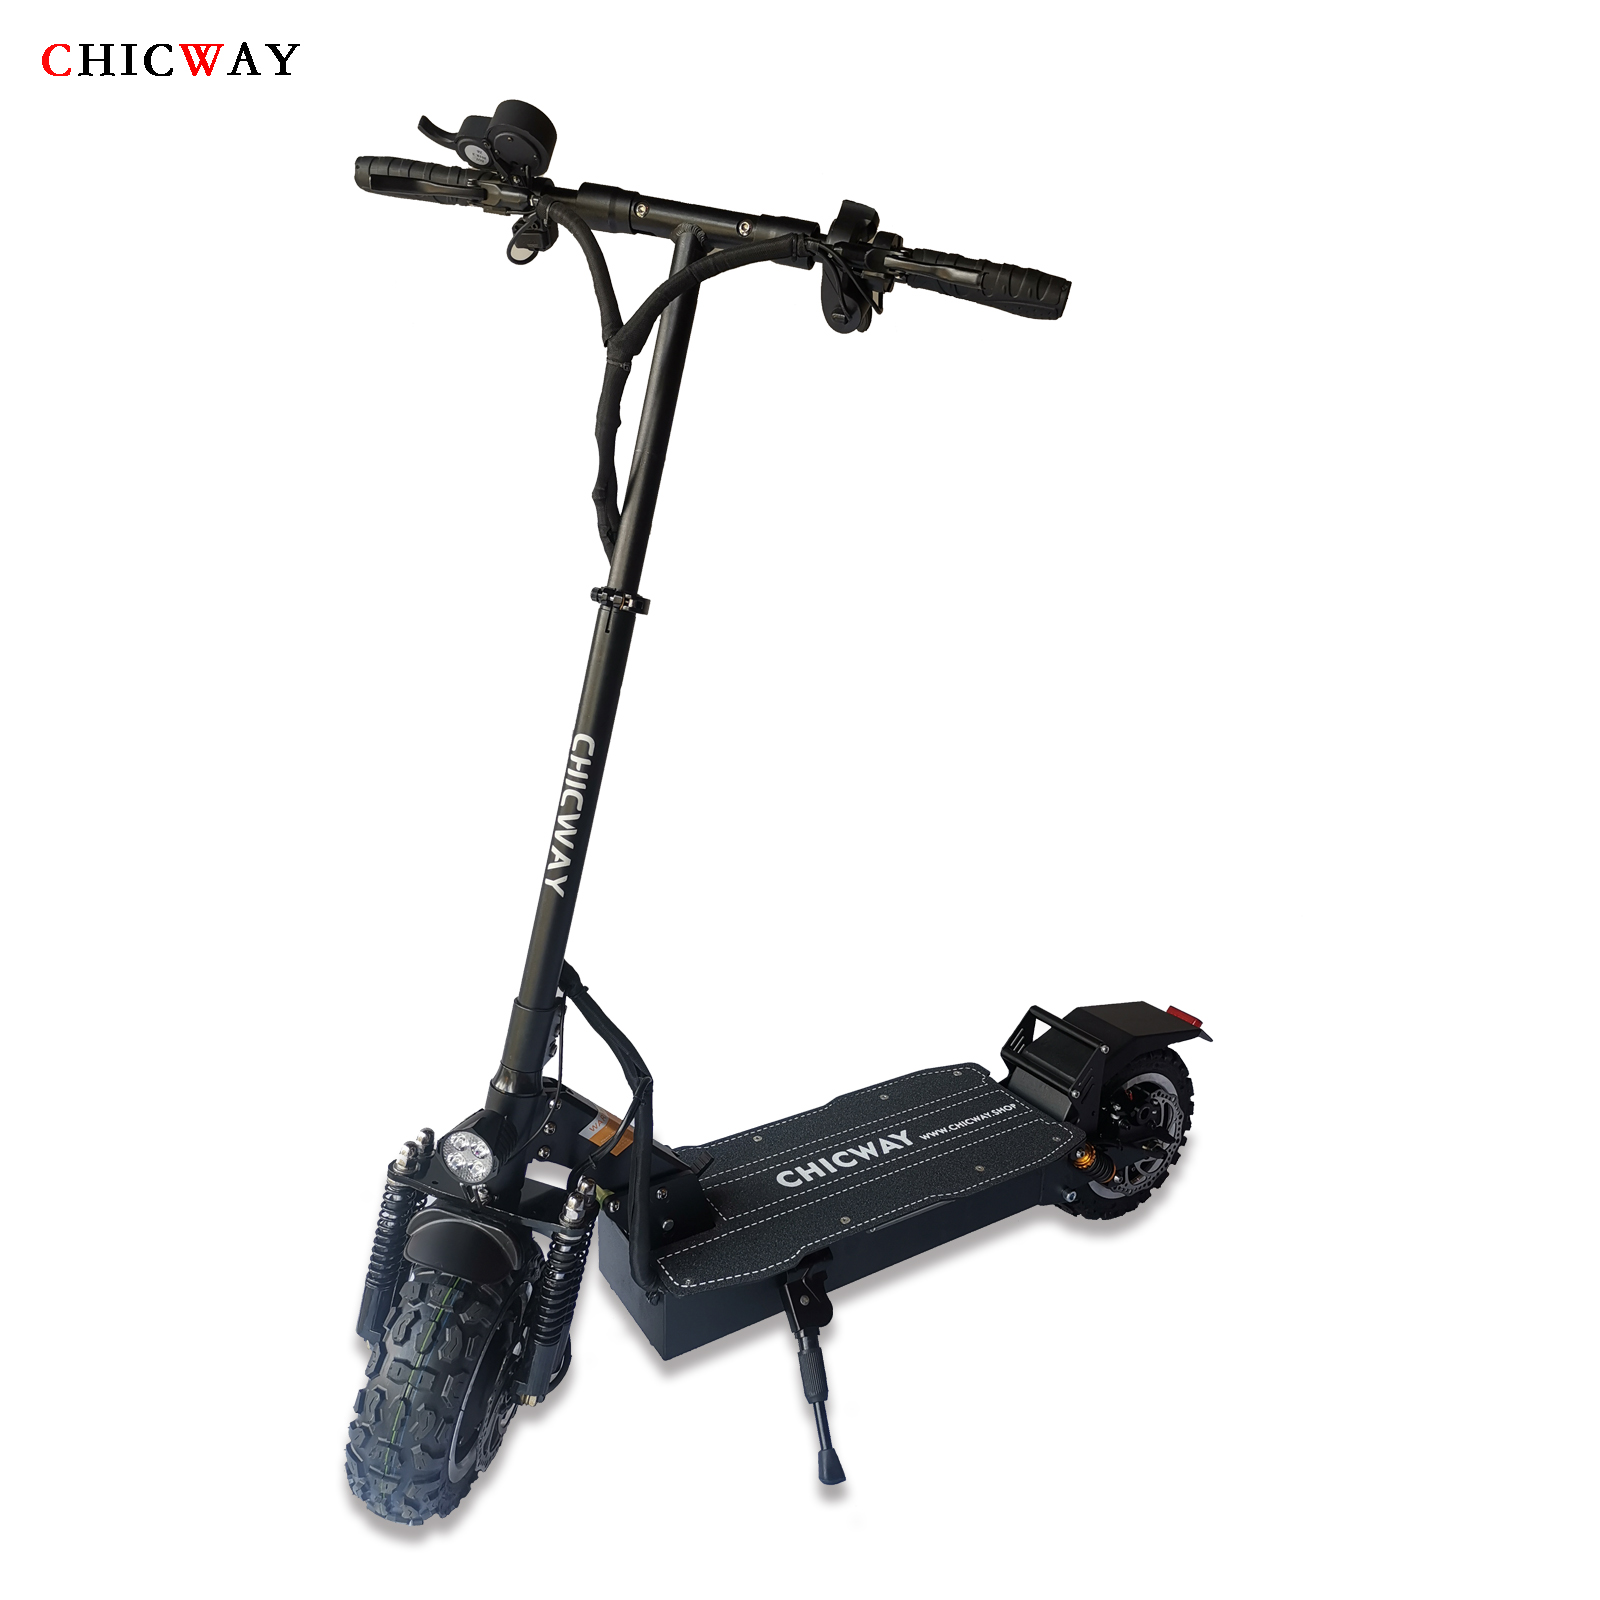 2019 Newest CHICWAY knight <font><b>Electric</b></font> <font><b>scooter</b></font> 11inch Off-road double drive and oil brake spring suspension 26AH,3200W,max 65km/h image